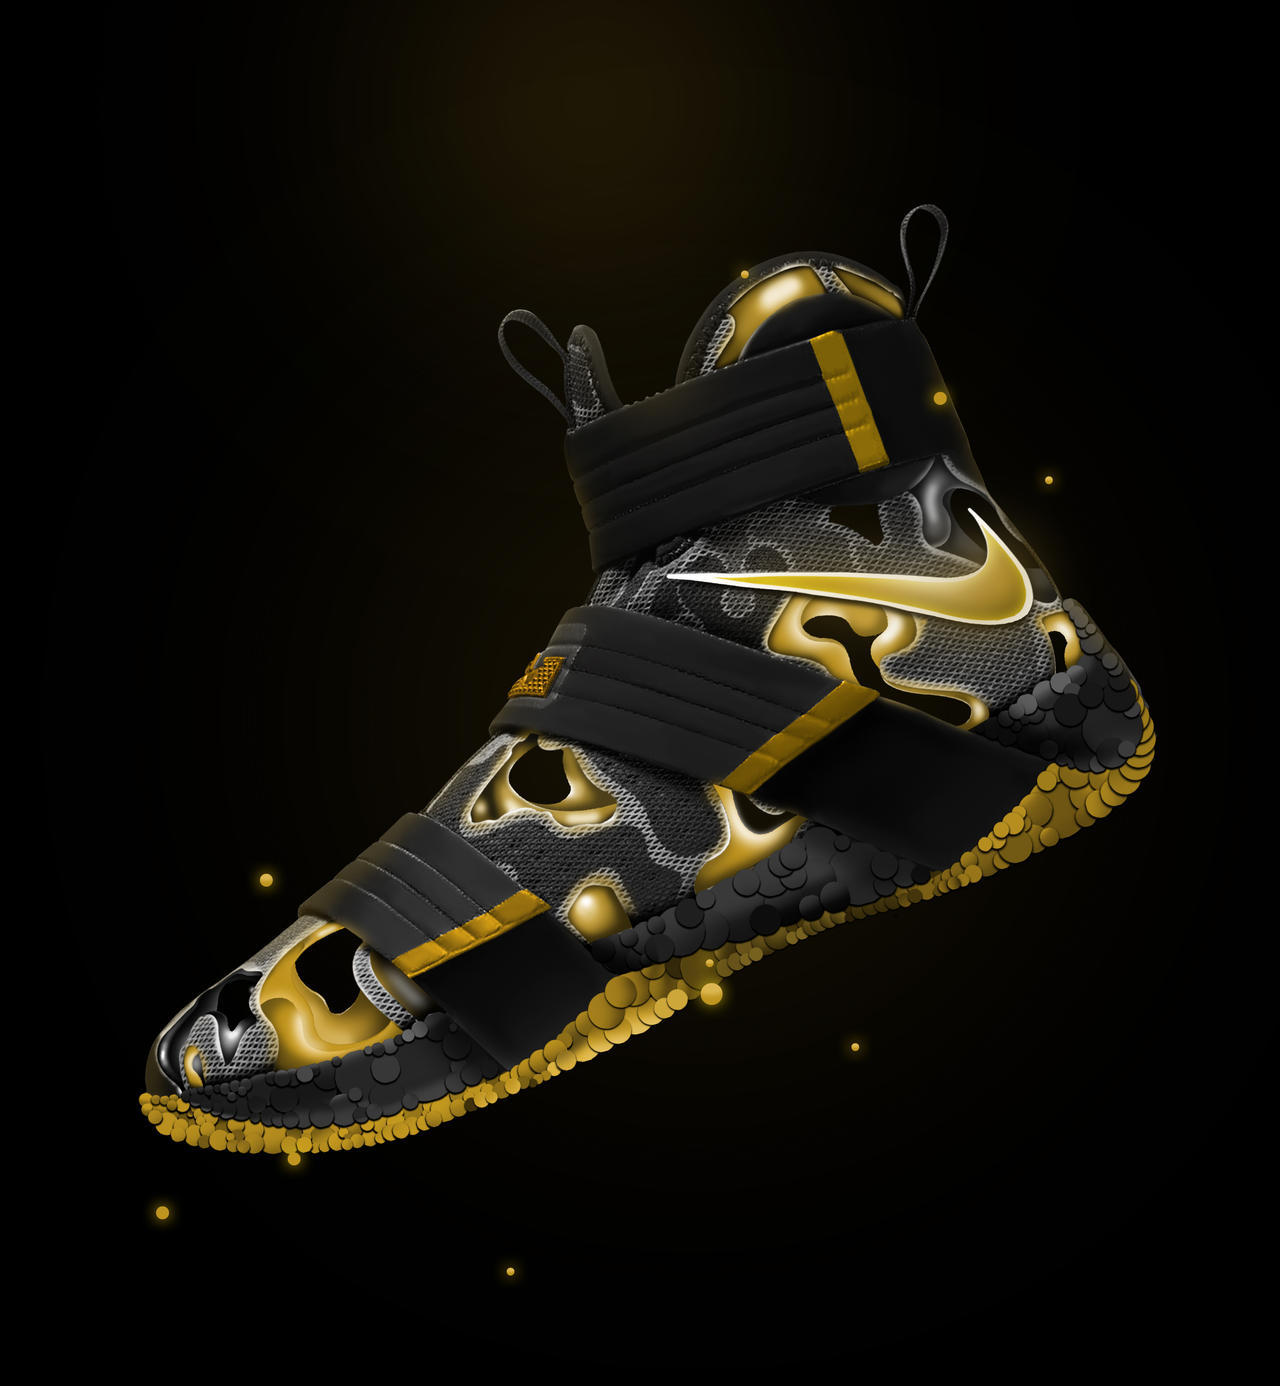 cuenta enfocar norte  Nike Zoom Lebron Soldier 10 camo Black and Gold by paoloangoluan on  DeviantArt